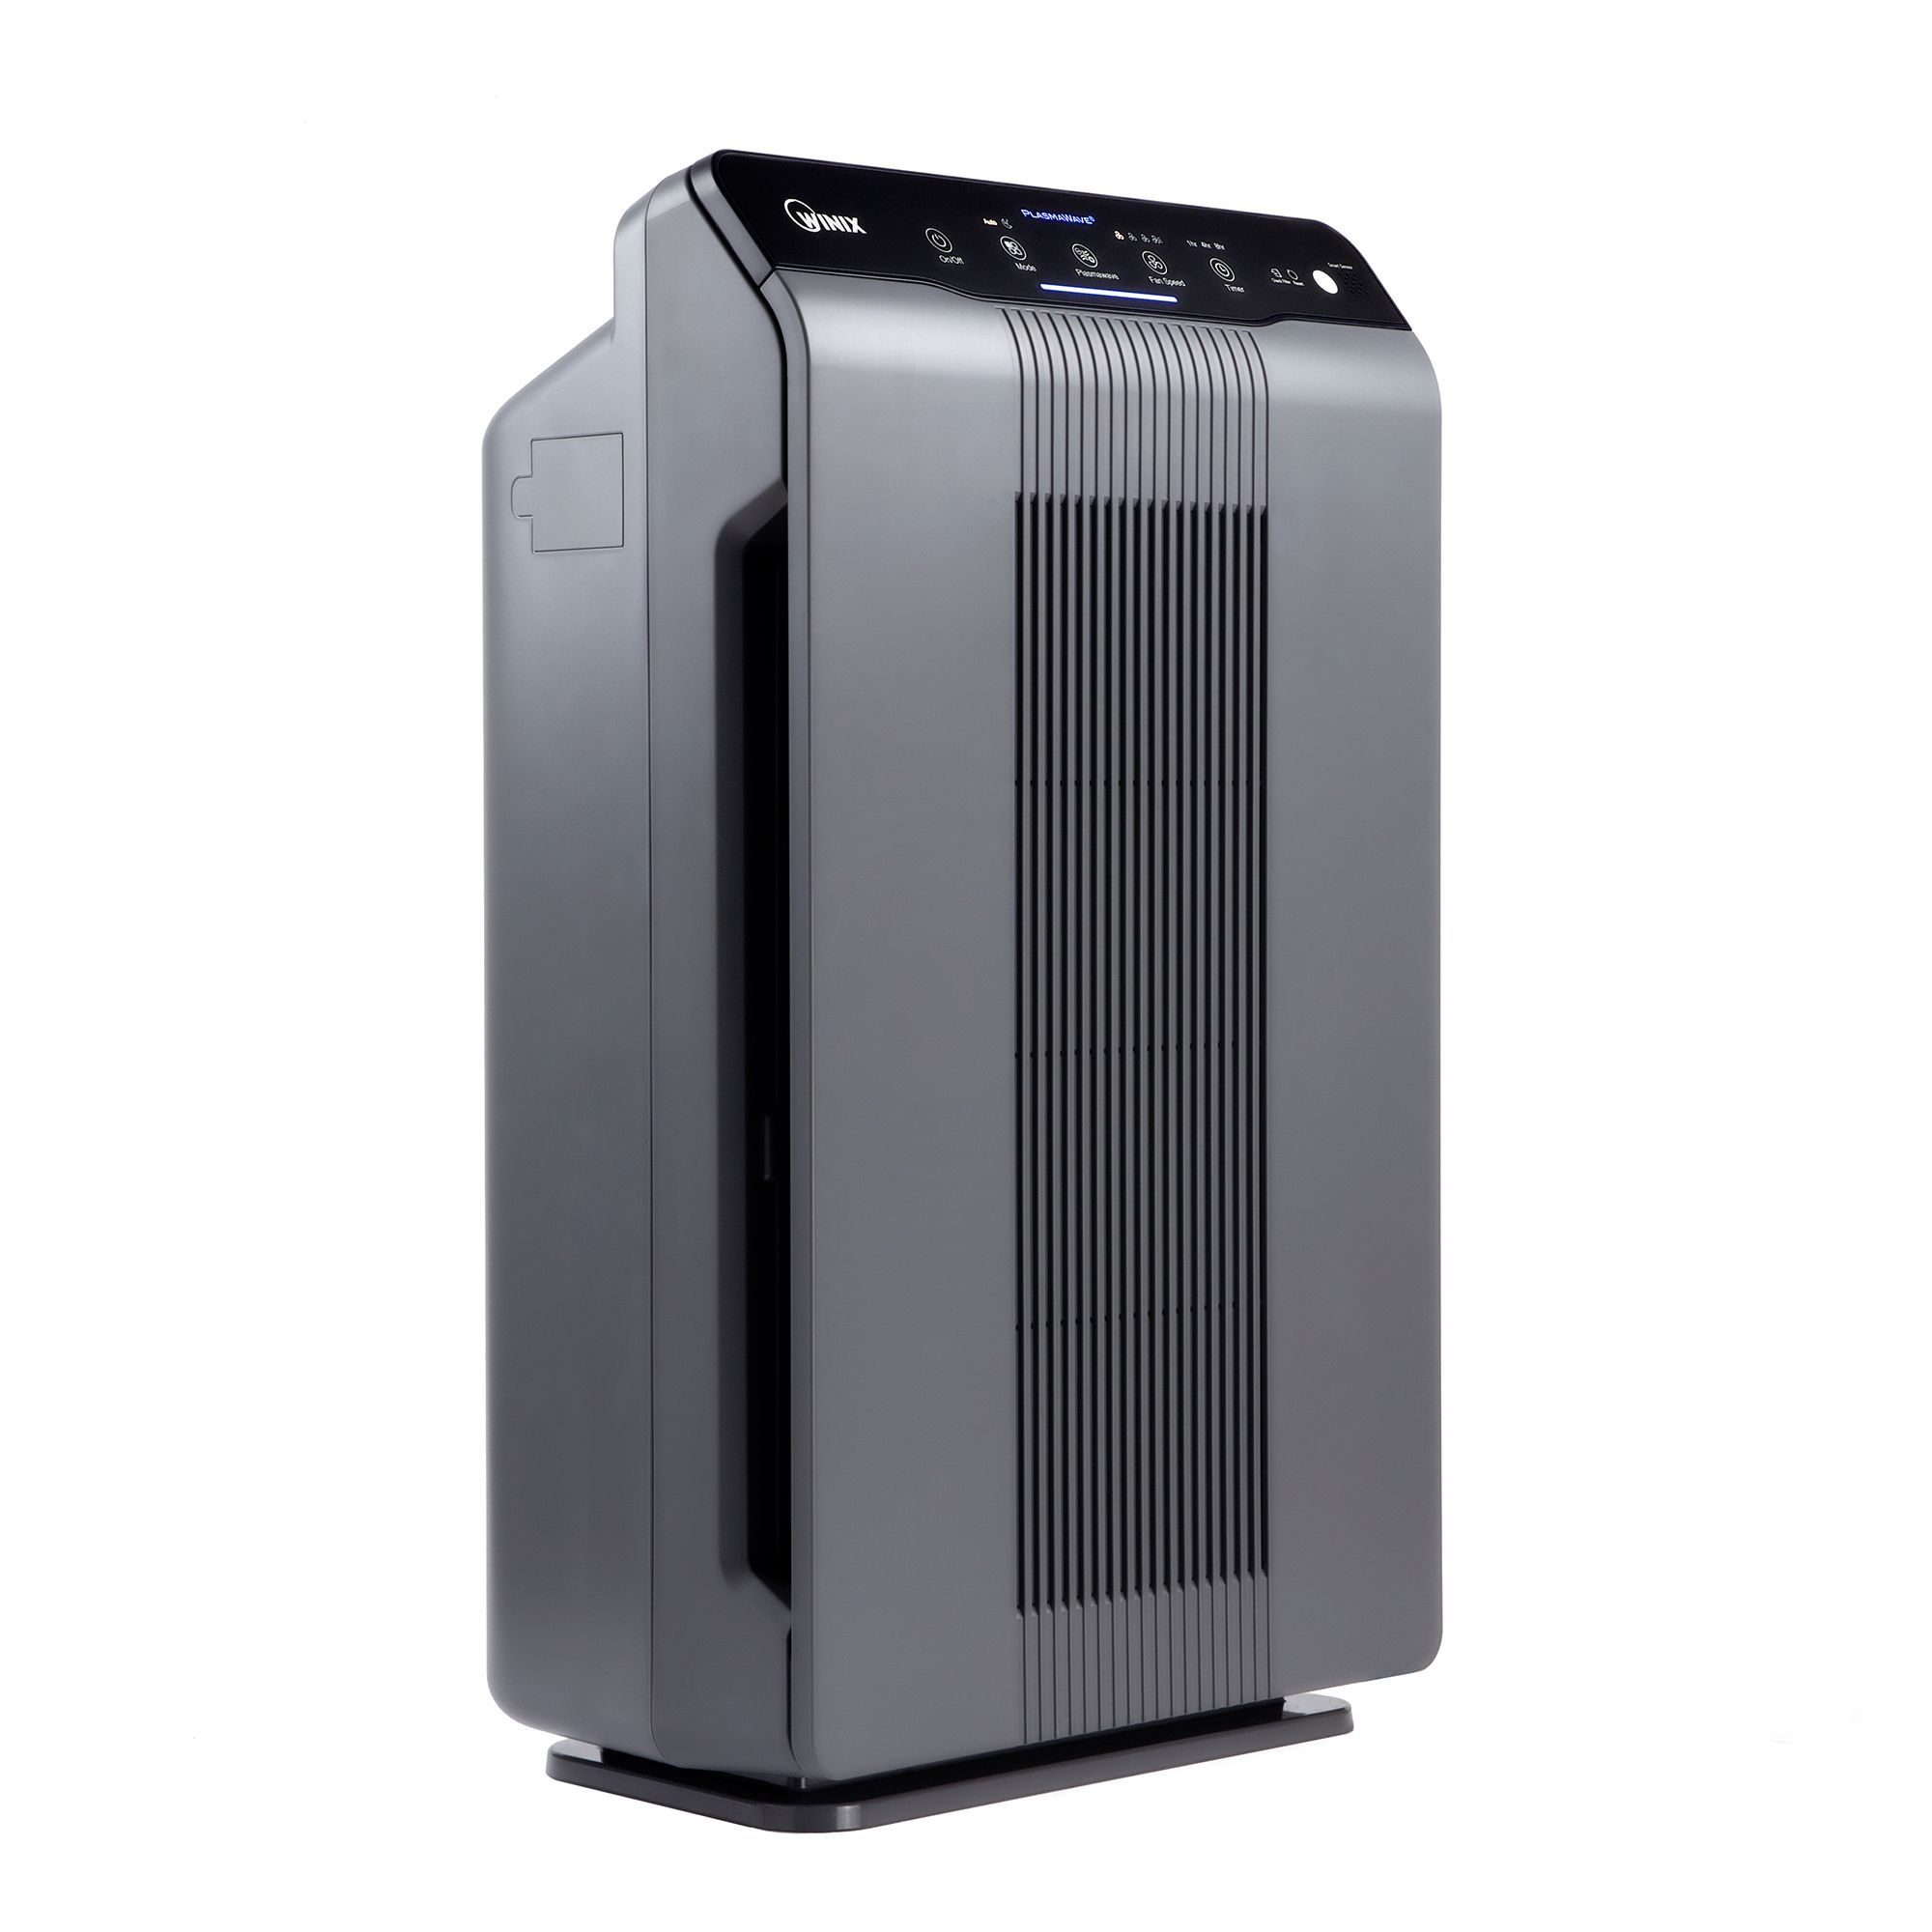 Winix 53002 True HEPA Air Purifier with PlasmaWave